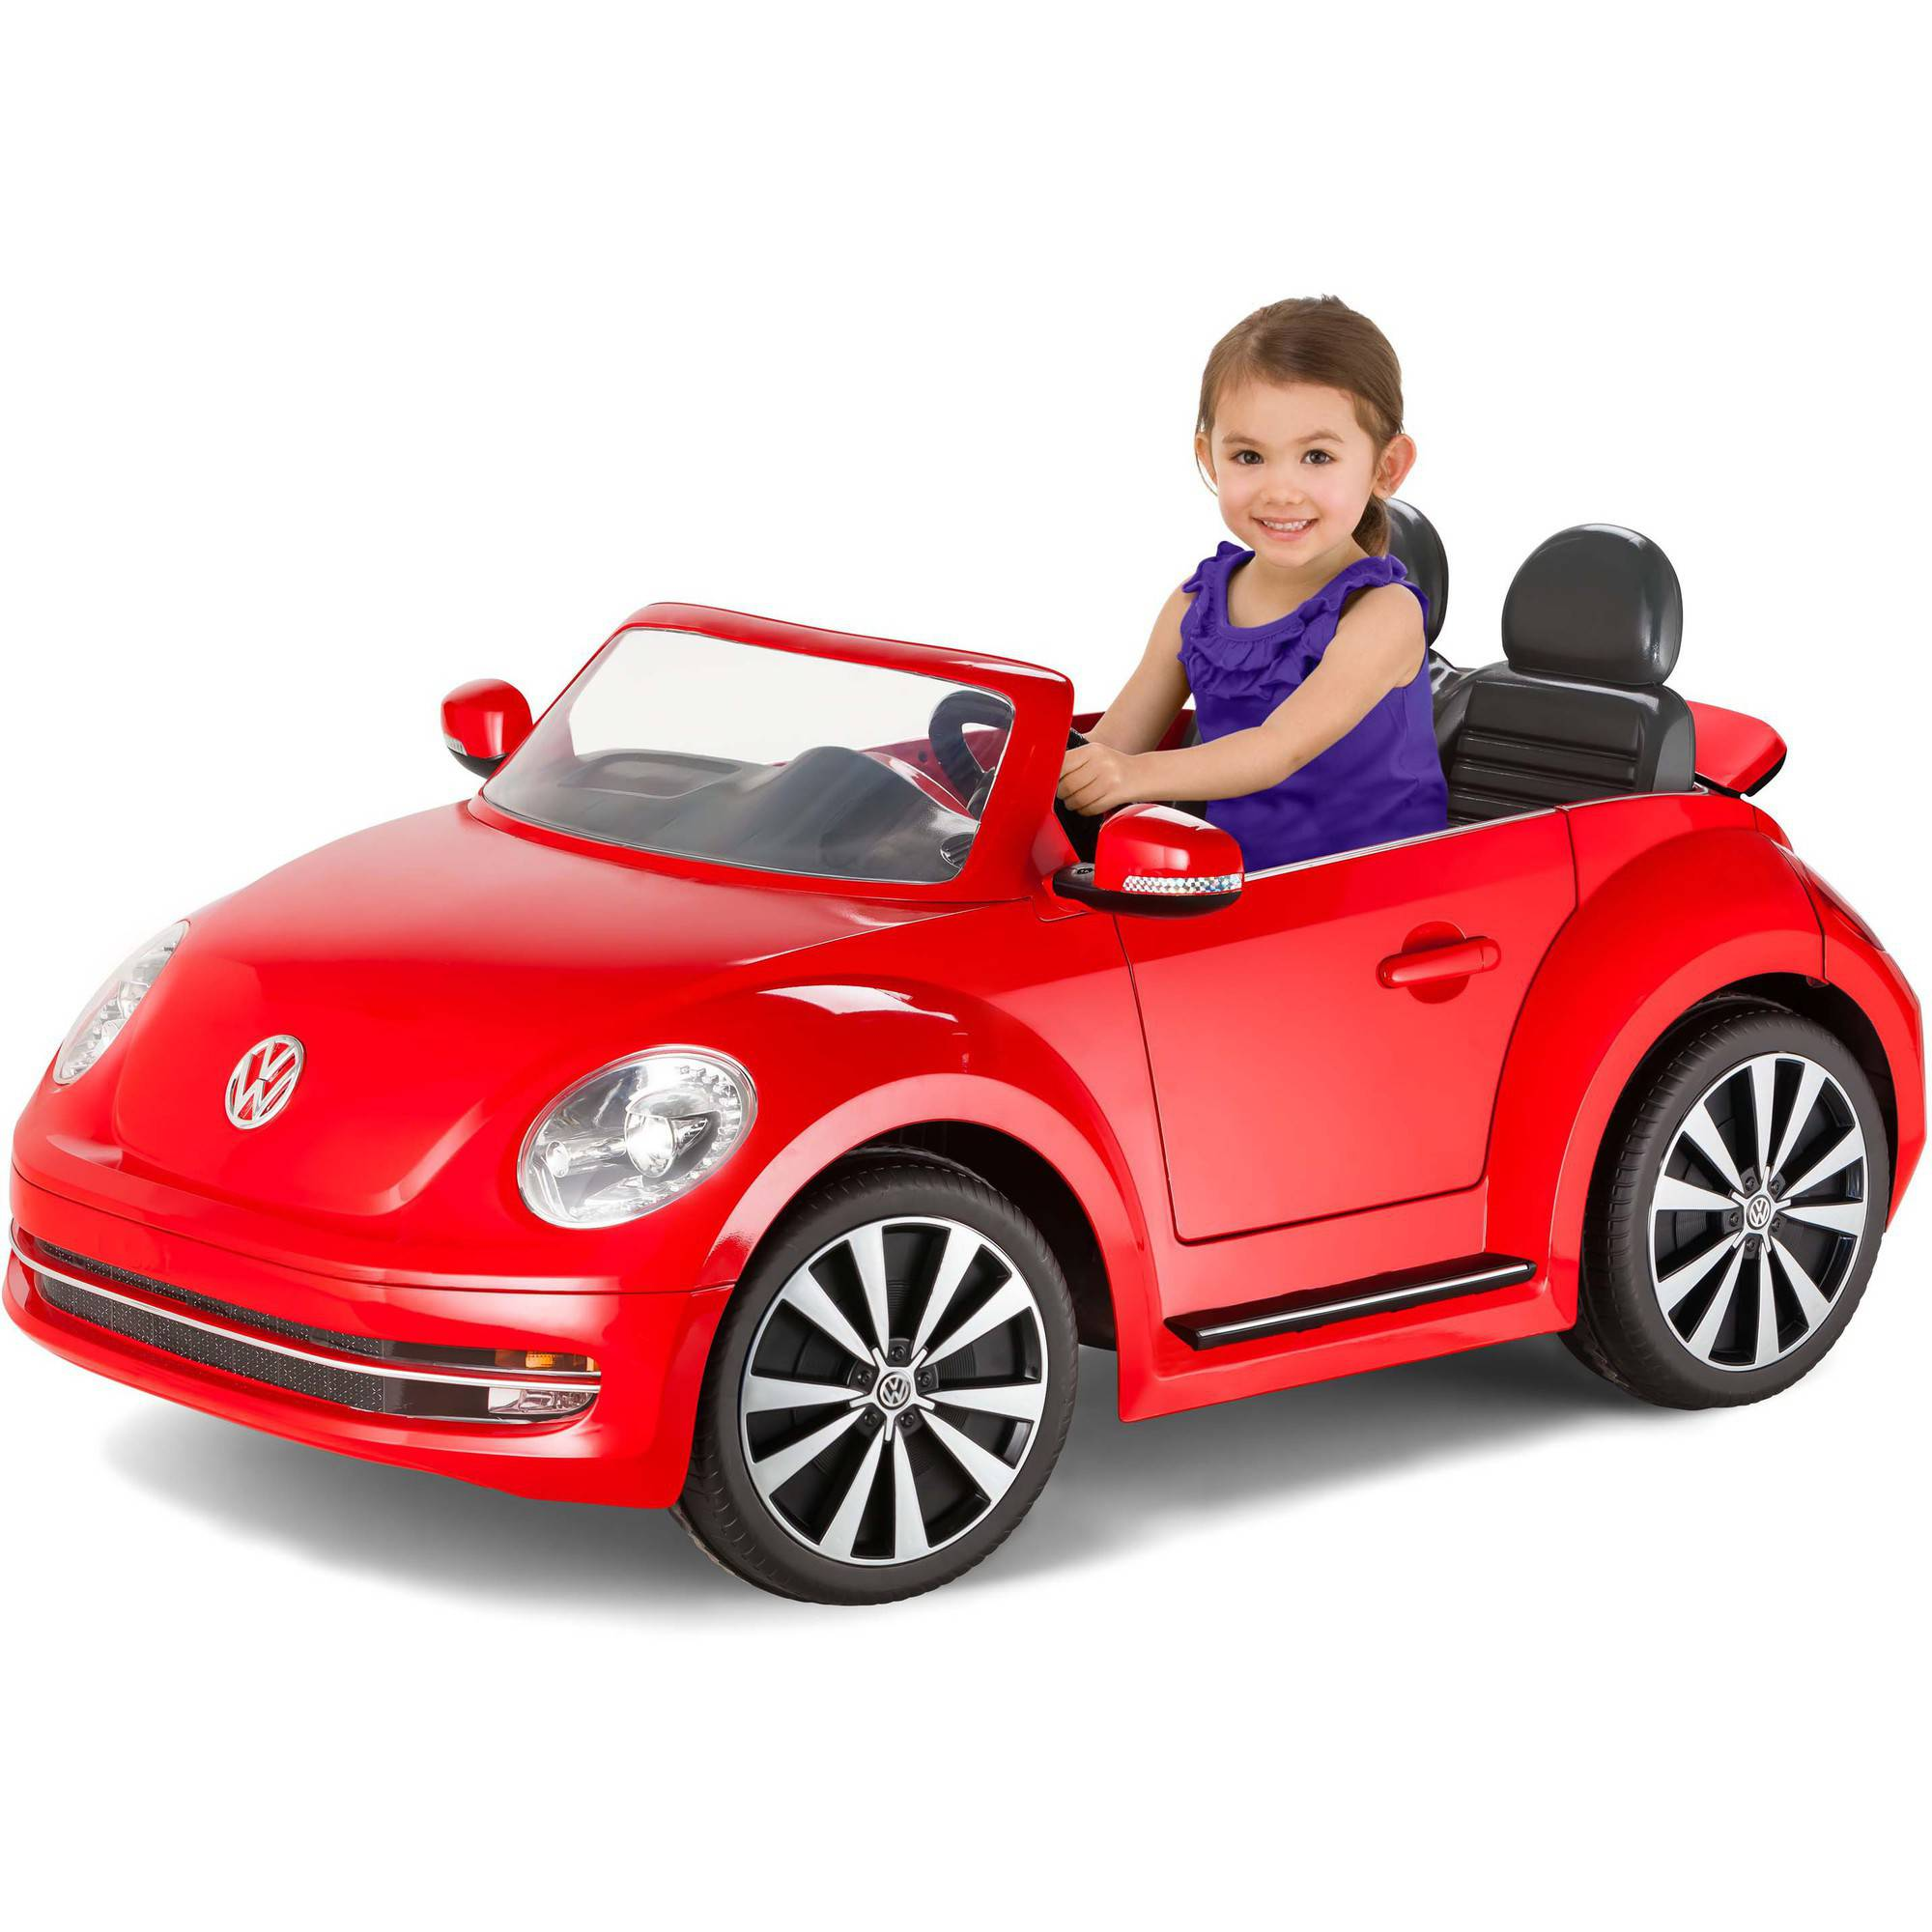 42da8bfa 6417 4e37 8794 9d1332580be7_1.10438c224a540d81d5a44e973bab07c3 kid trax vw beetle convertible 12 volt battery powered ride on  at gsmx.co